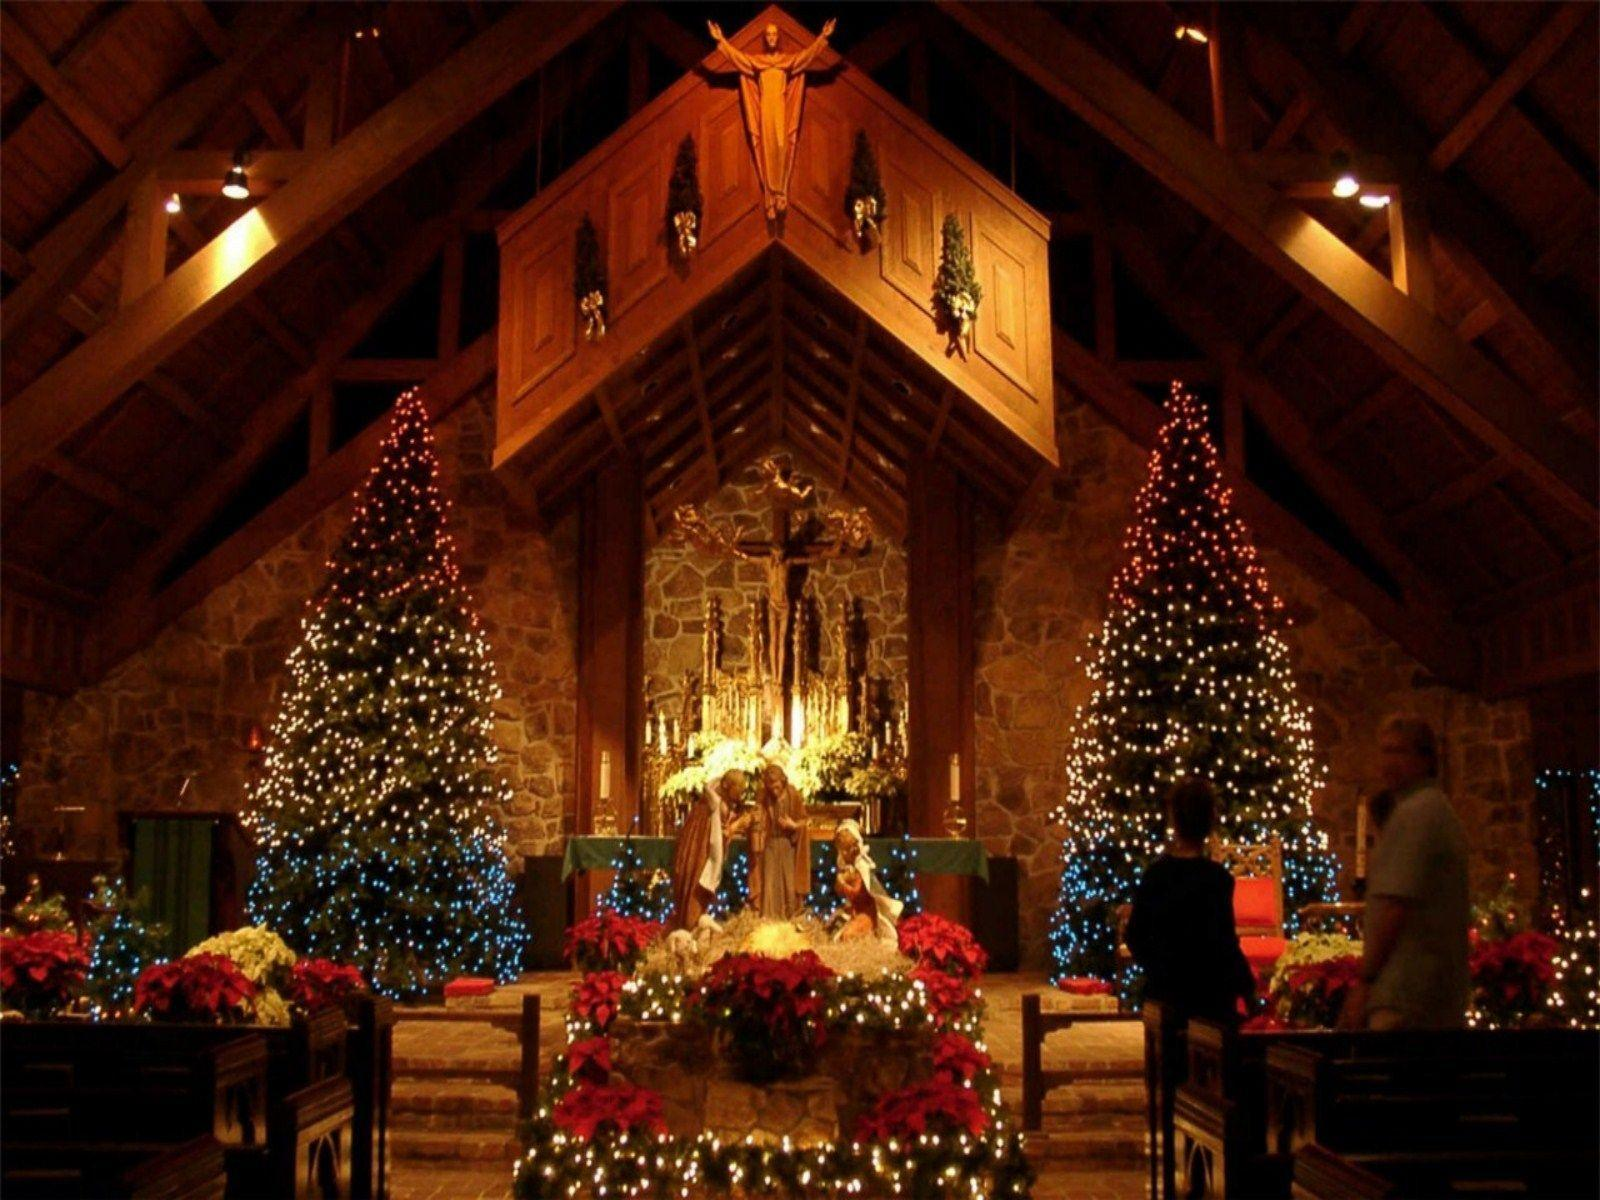 Animated Fireplace Wallpaper Christmas Scenes Wallpapers Wallpaper Cave